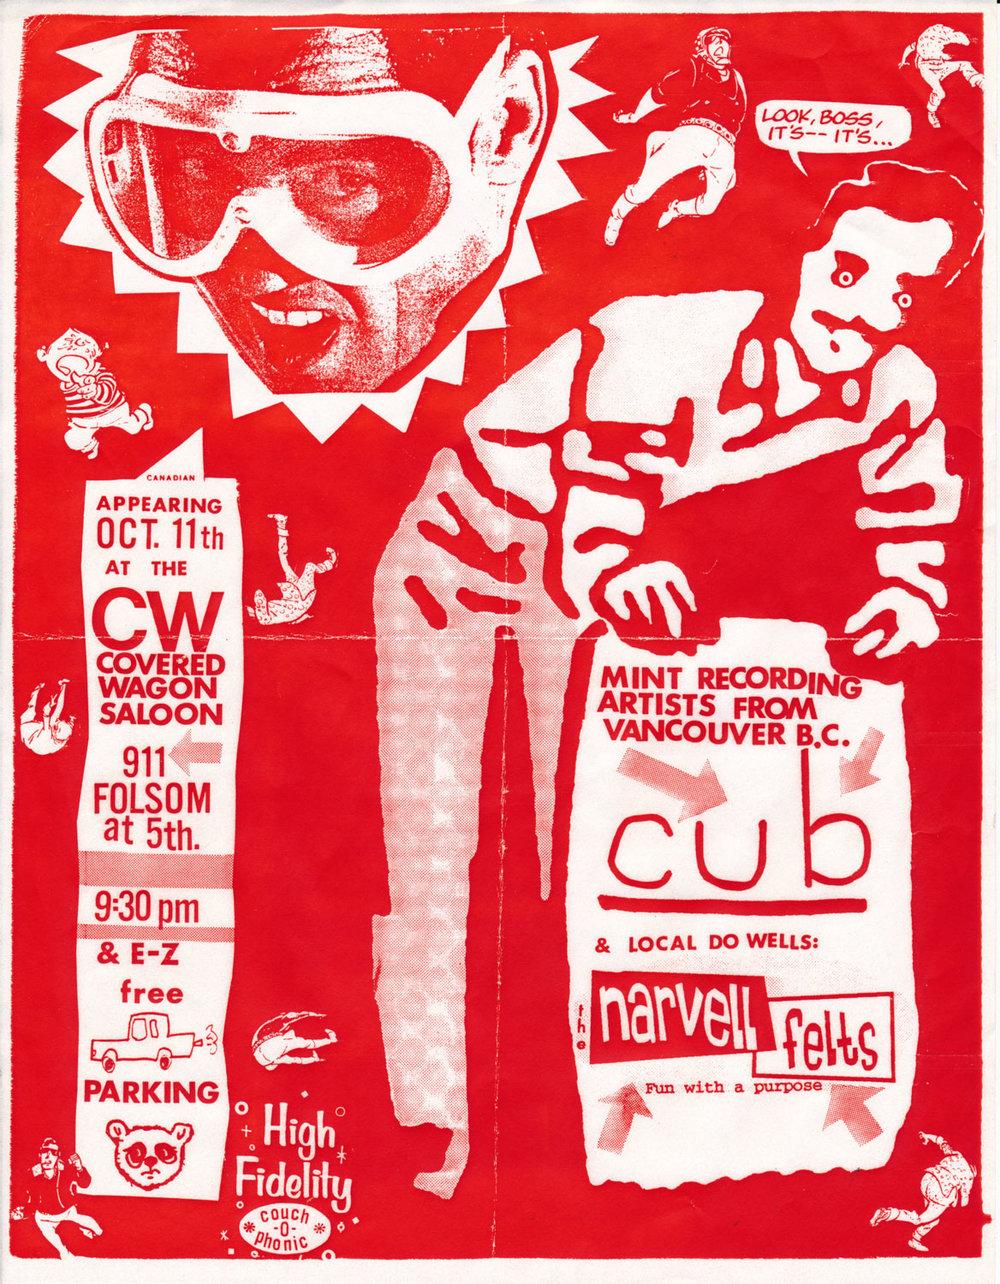 Narvel-Felts-Cub-Flyer-oct-11.jpg